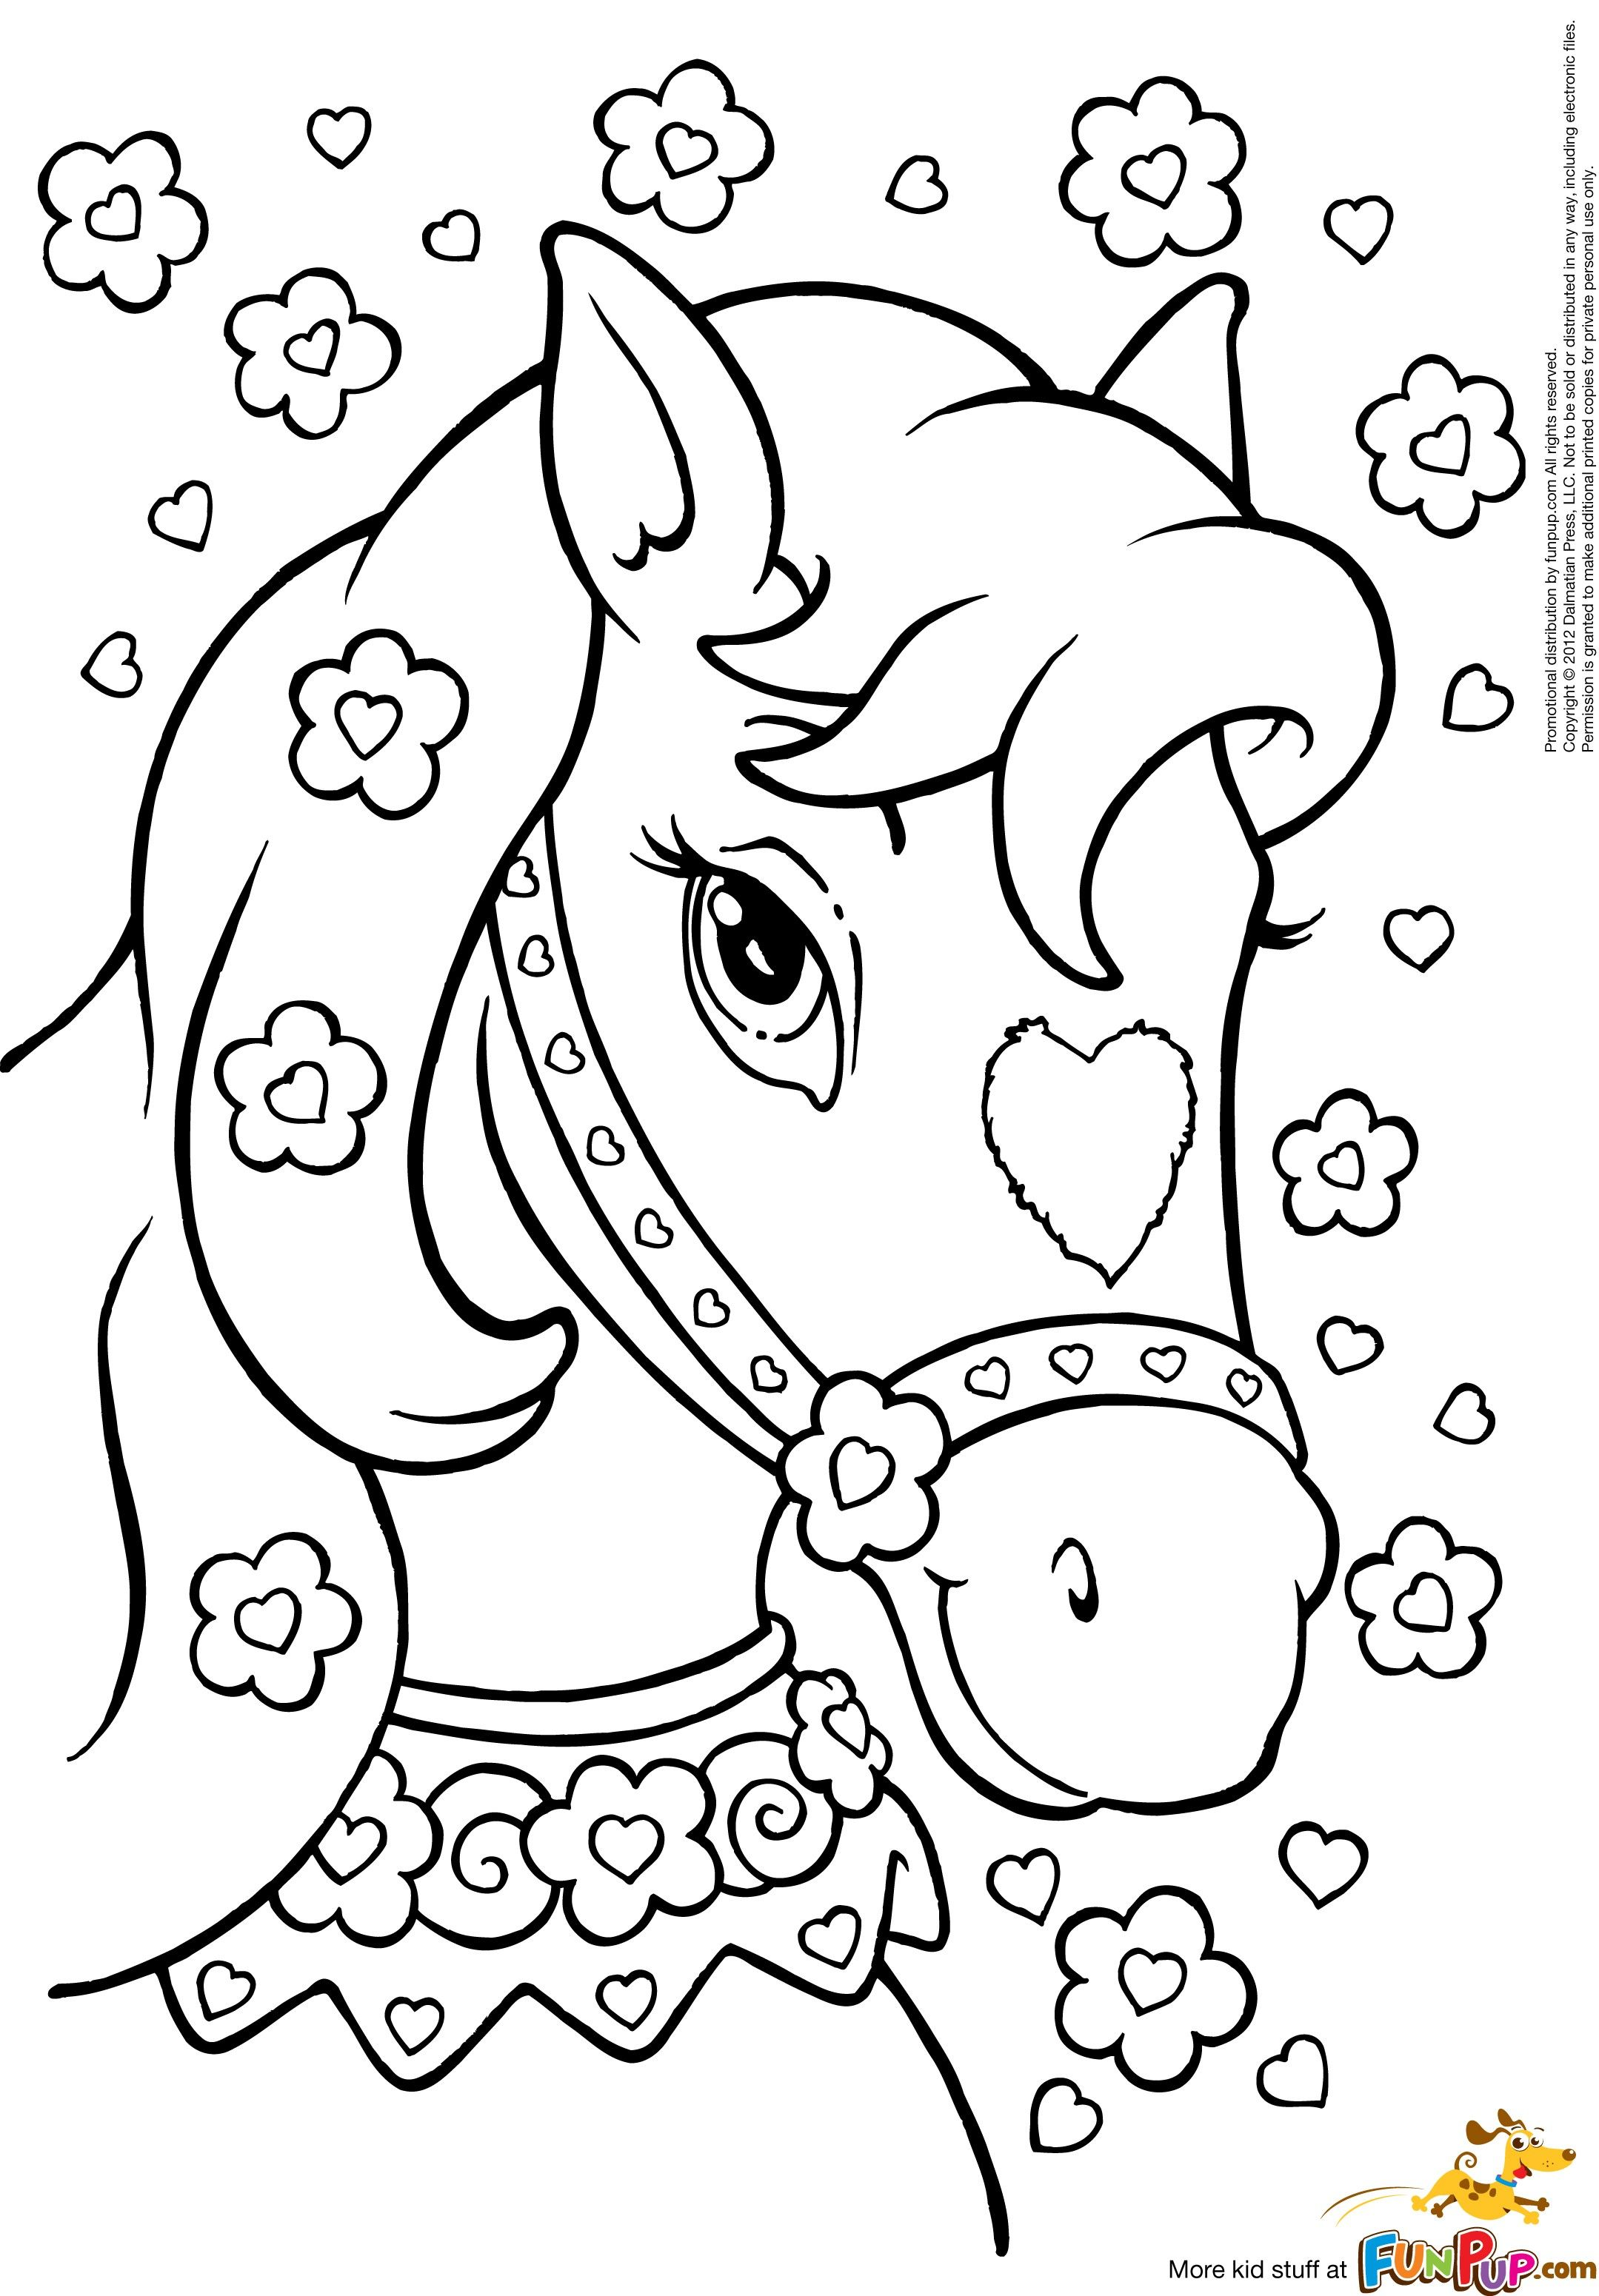 free printable princess coloring pages printable princess coloring pages | Coloring Pages for Kids | kids  free printable princess coloring pages